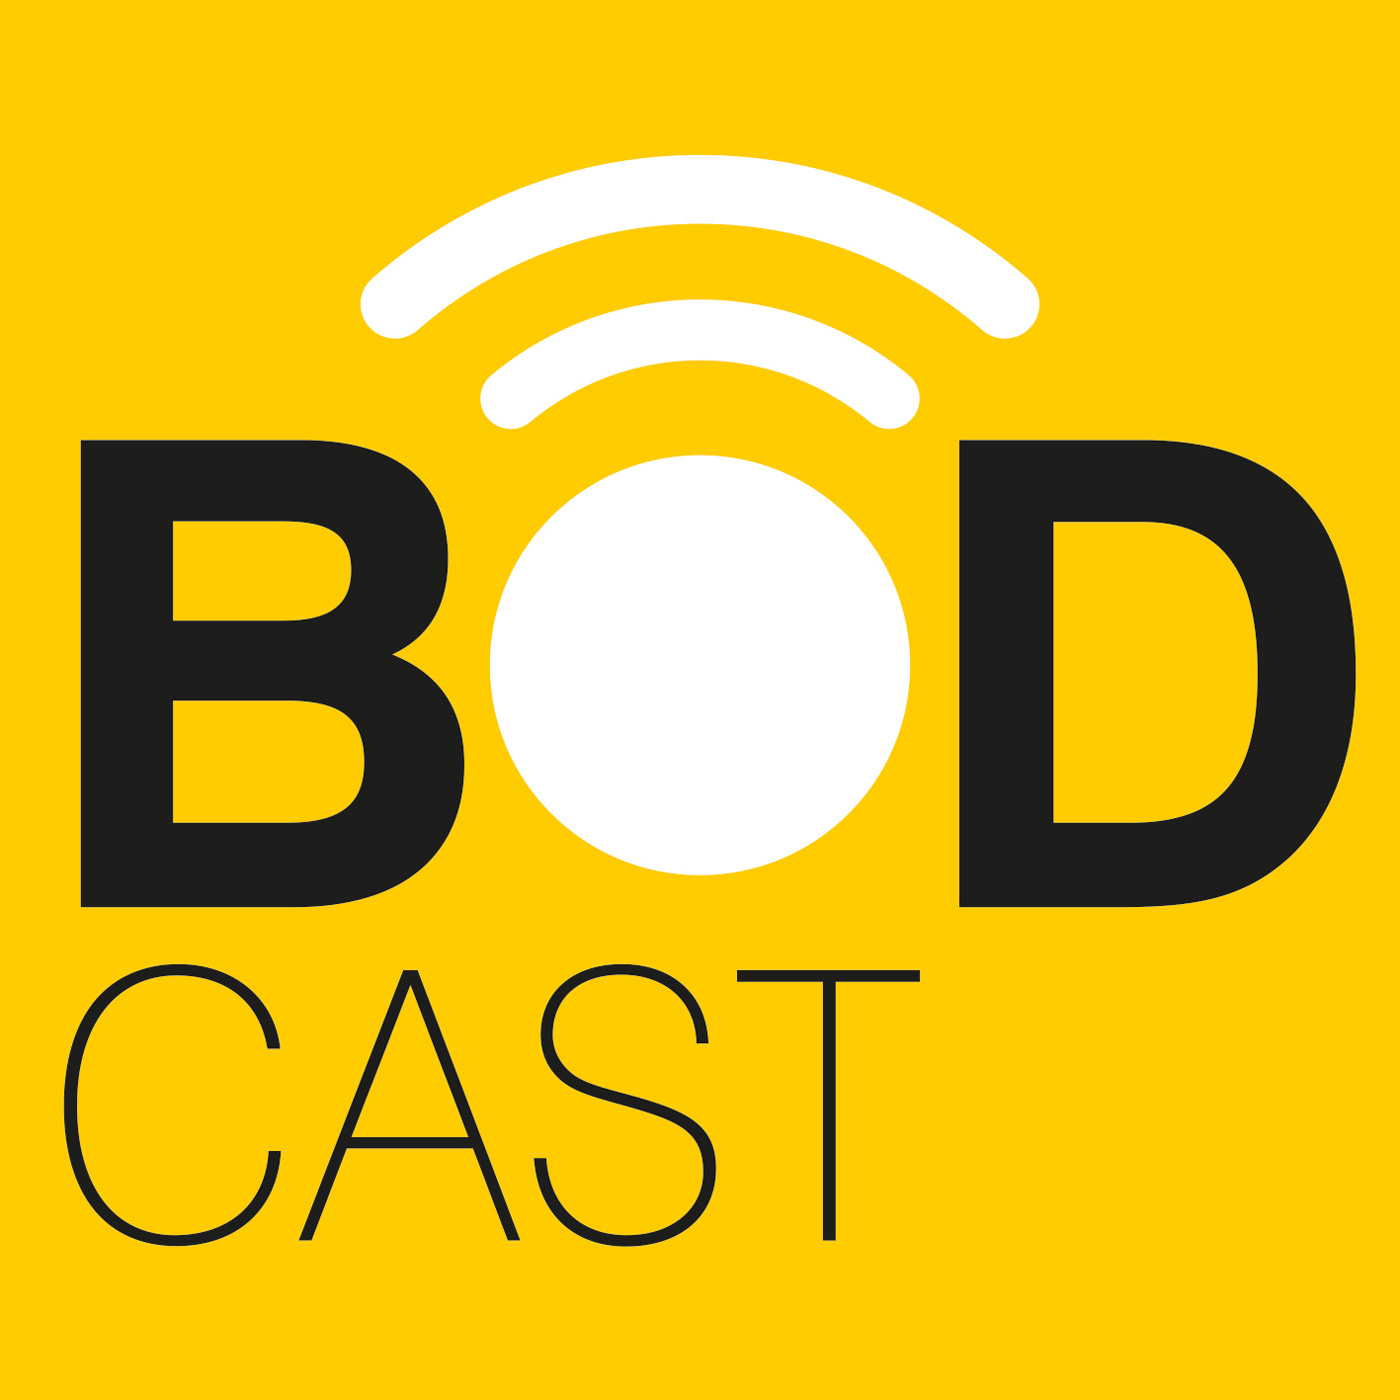 Bodcast by Practice Plan